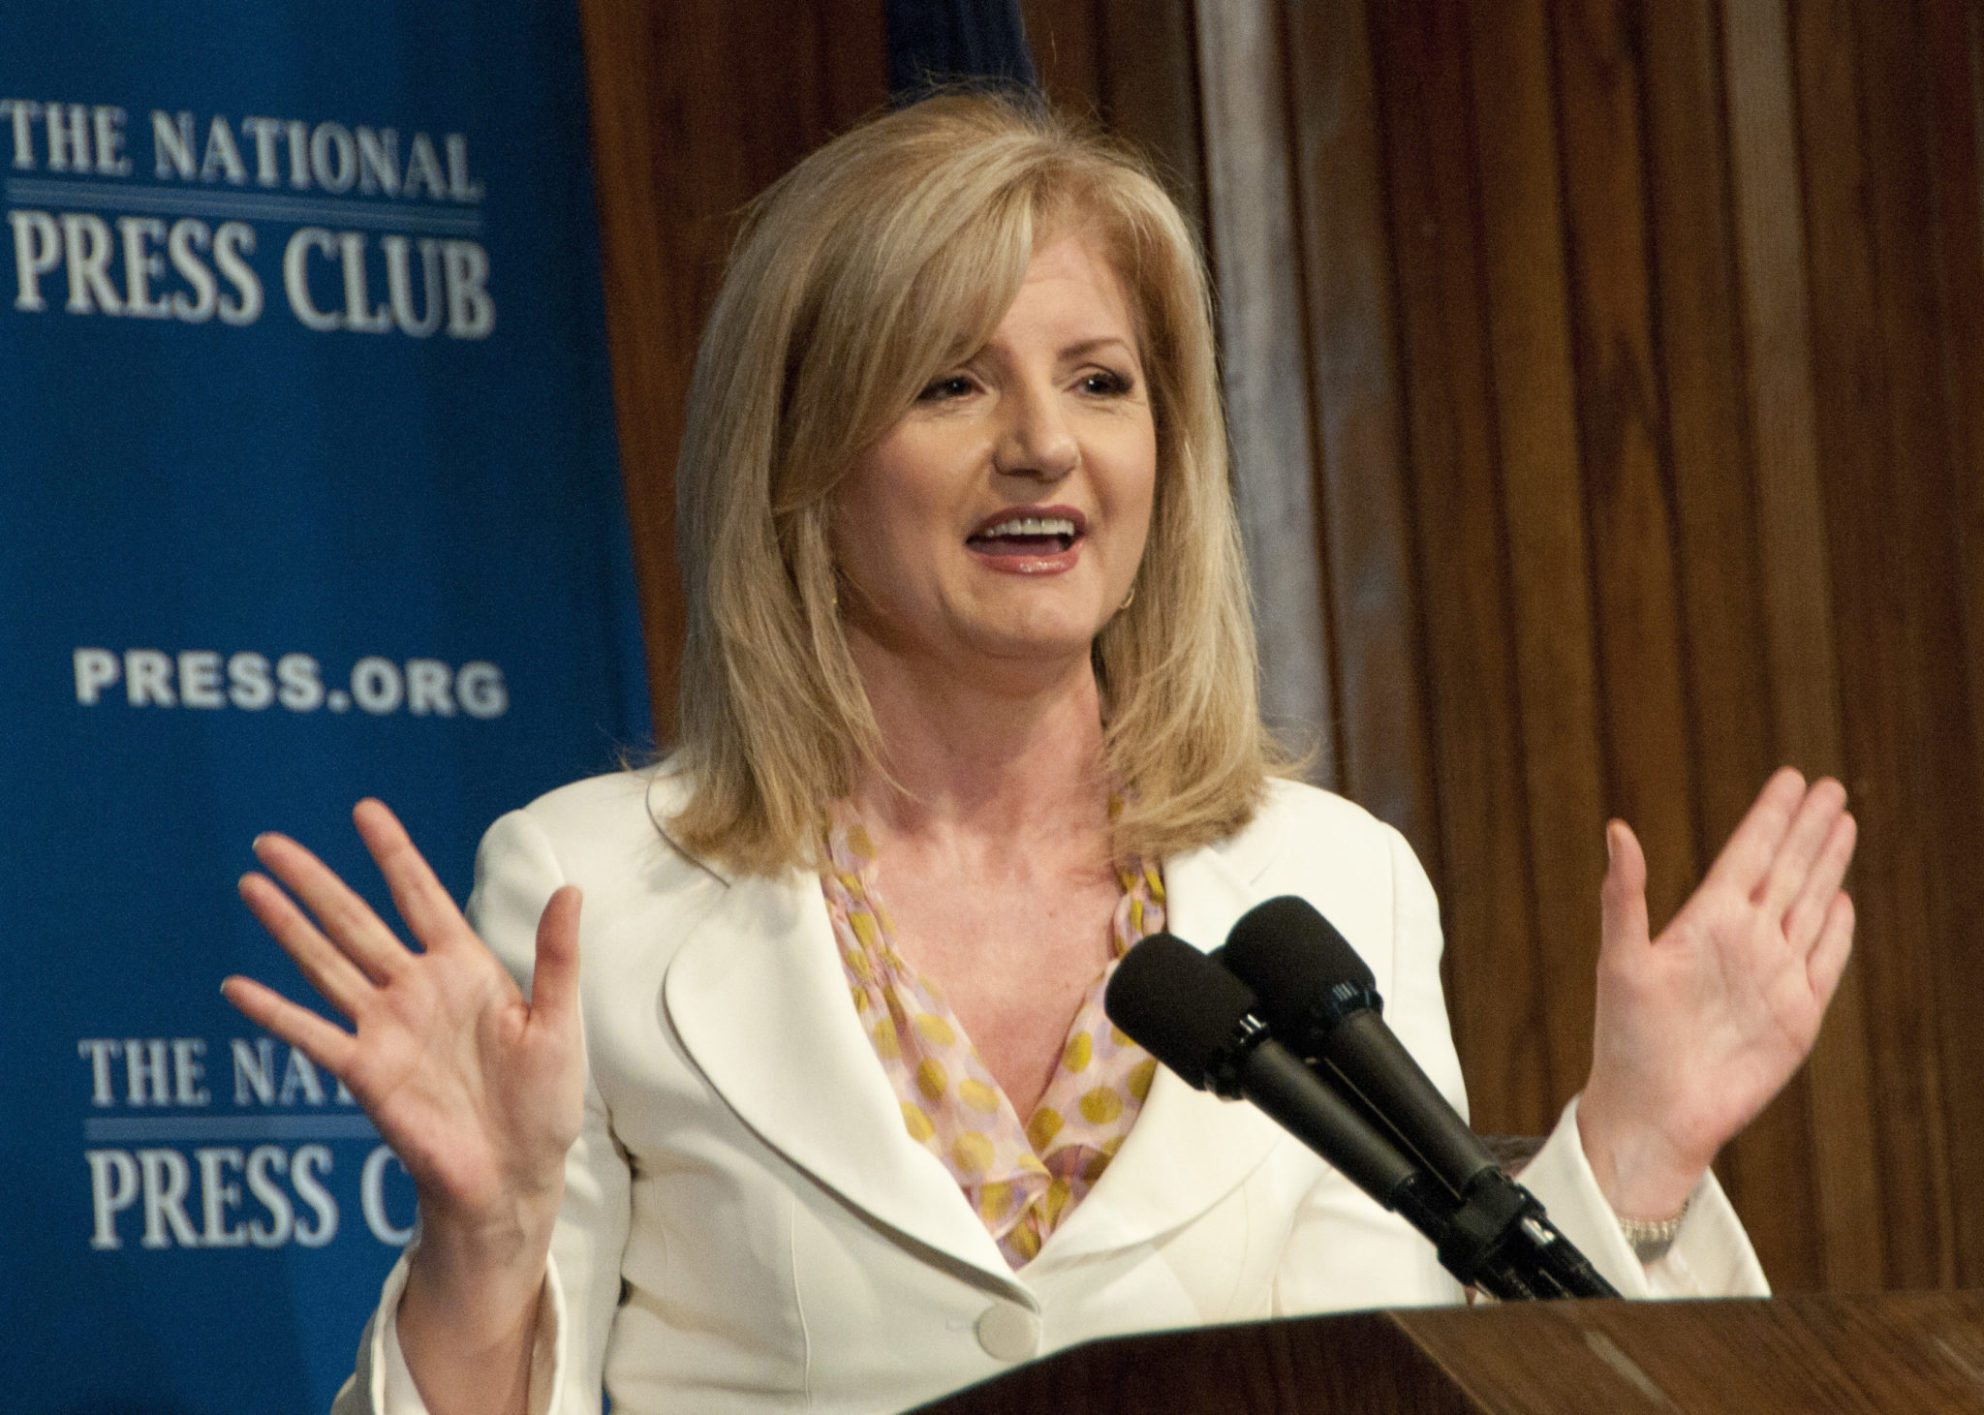 Arianna Huffington announced as keynote speaker at Real Estate Connect NYC